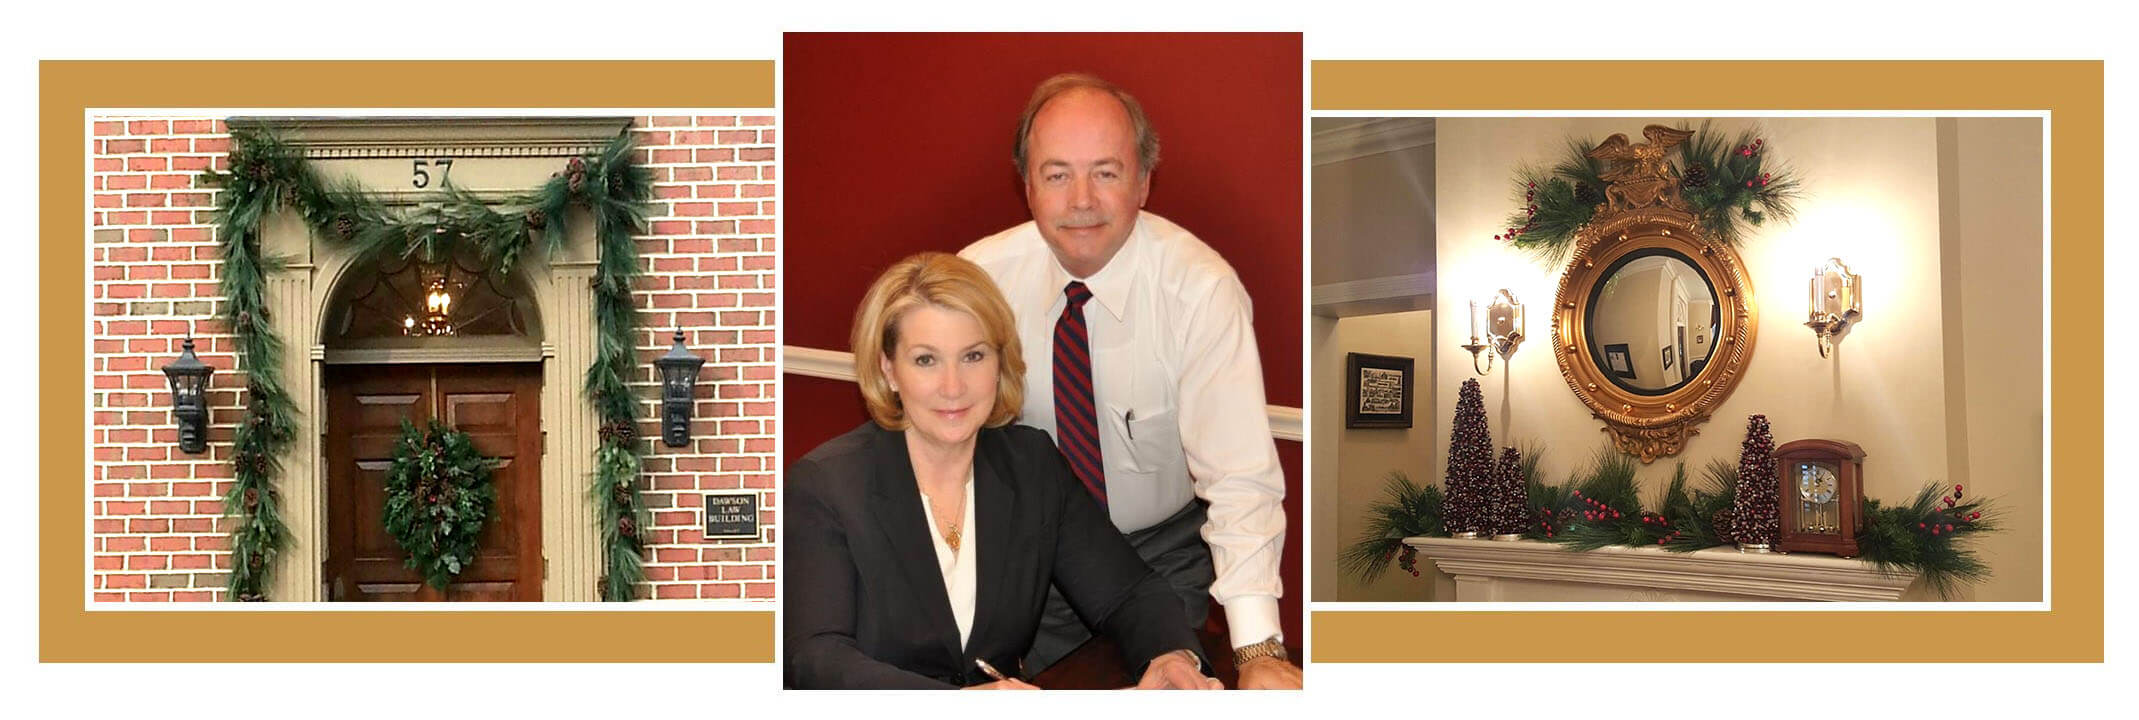 Gary and Louise Monaghan Attorneys in Uniontown PA